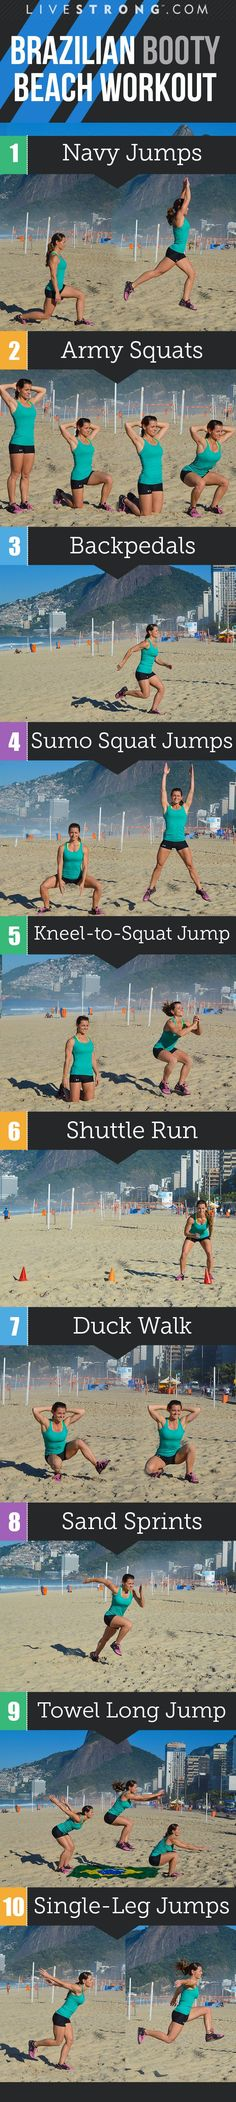 The ultimate beach-bum workout! #workoutguide